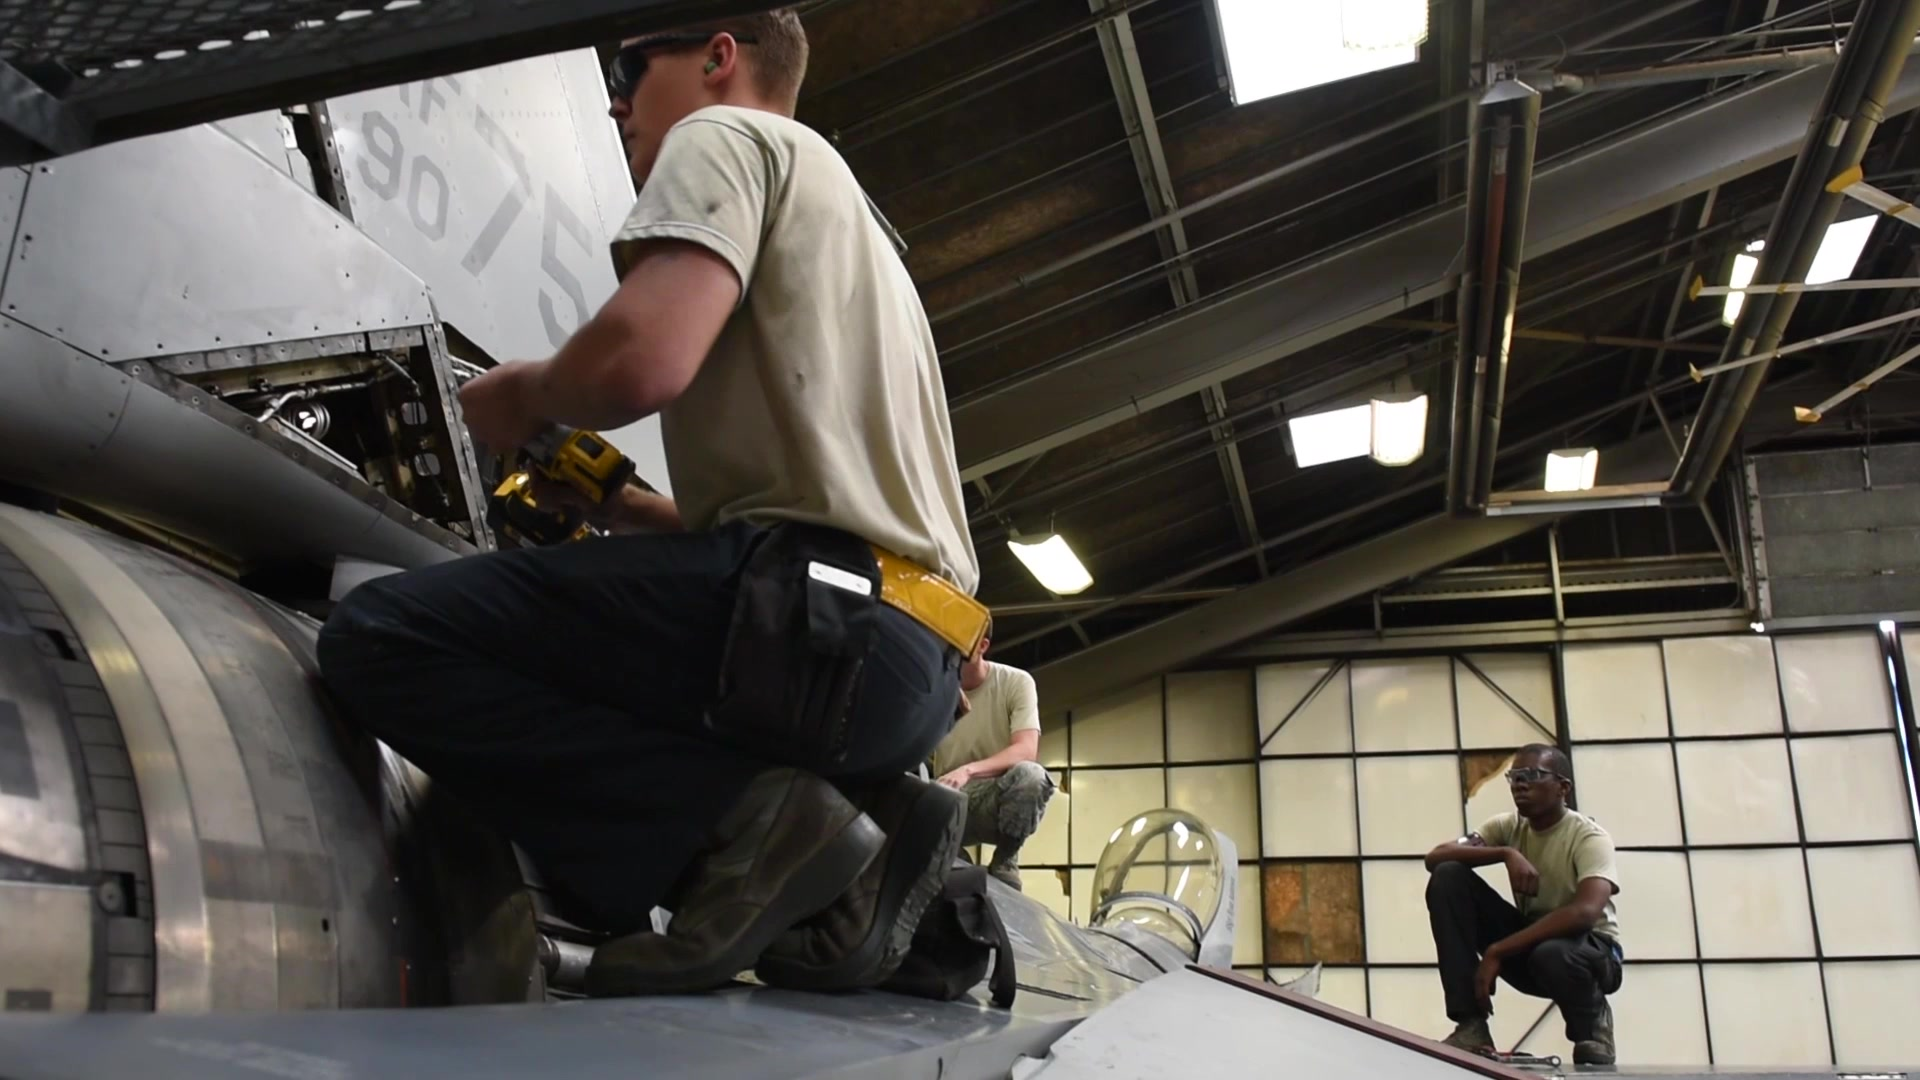 Highlight video of the Airmen working hard in the 56th EMS Fabrication Flight at Luke Air Force Base, Arizona.